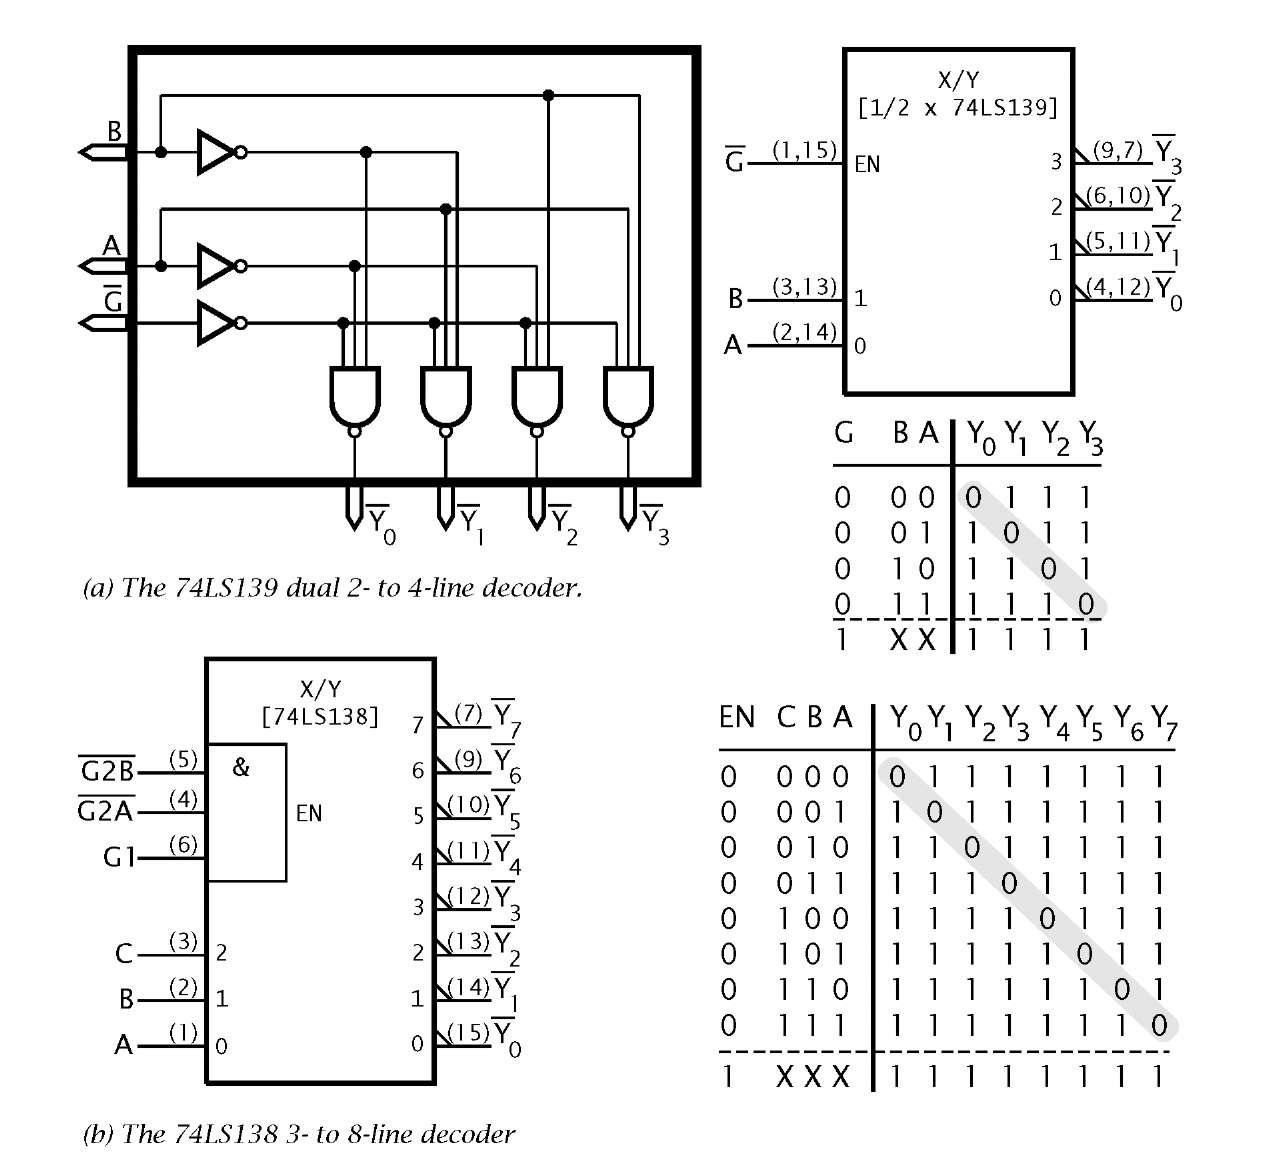 Logic Circuitry Part 1 Pic Microcontroller This Is A Transistor Ttl Or Gate Circuit Using The 74ls138 And 139 Msi Natural Decoders